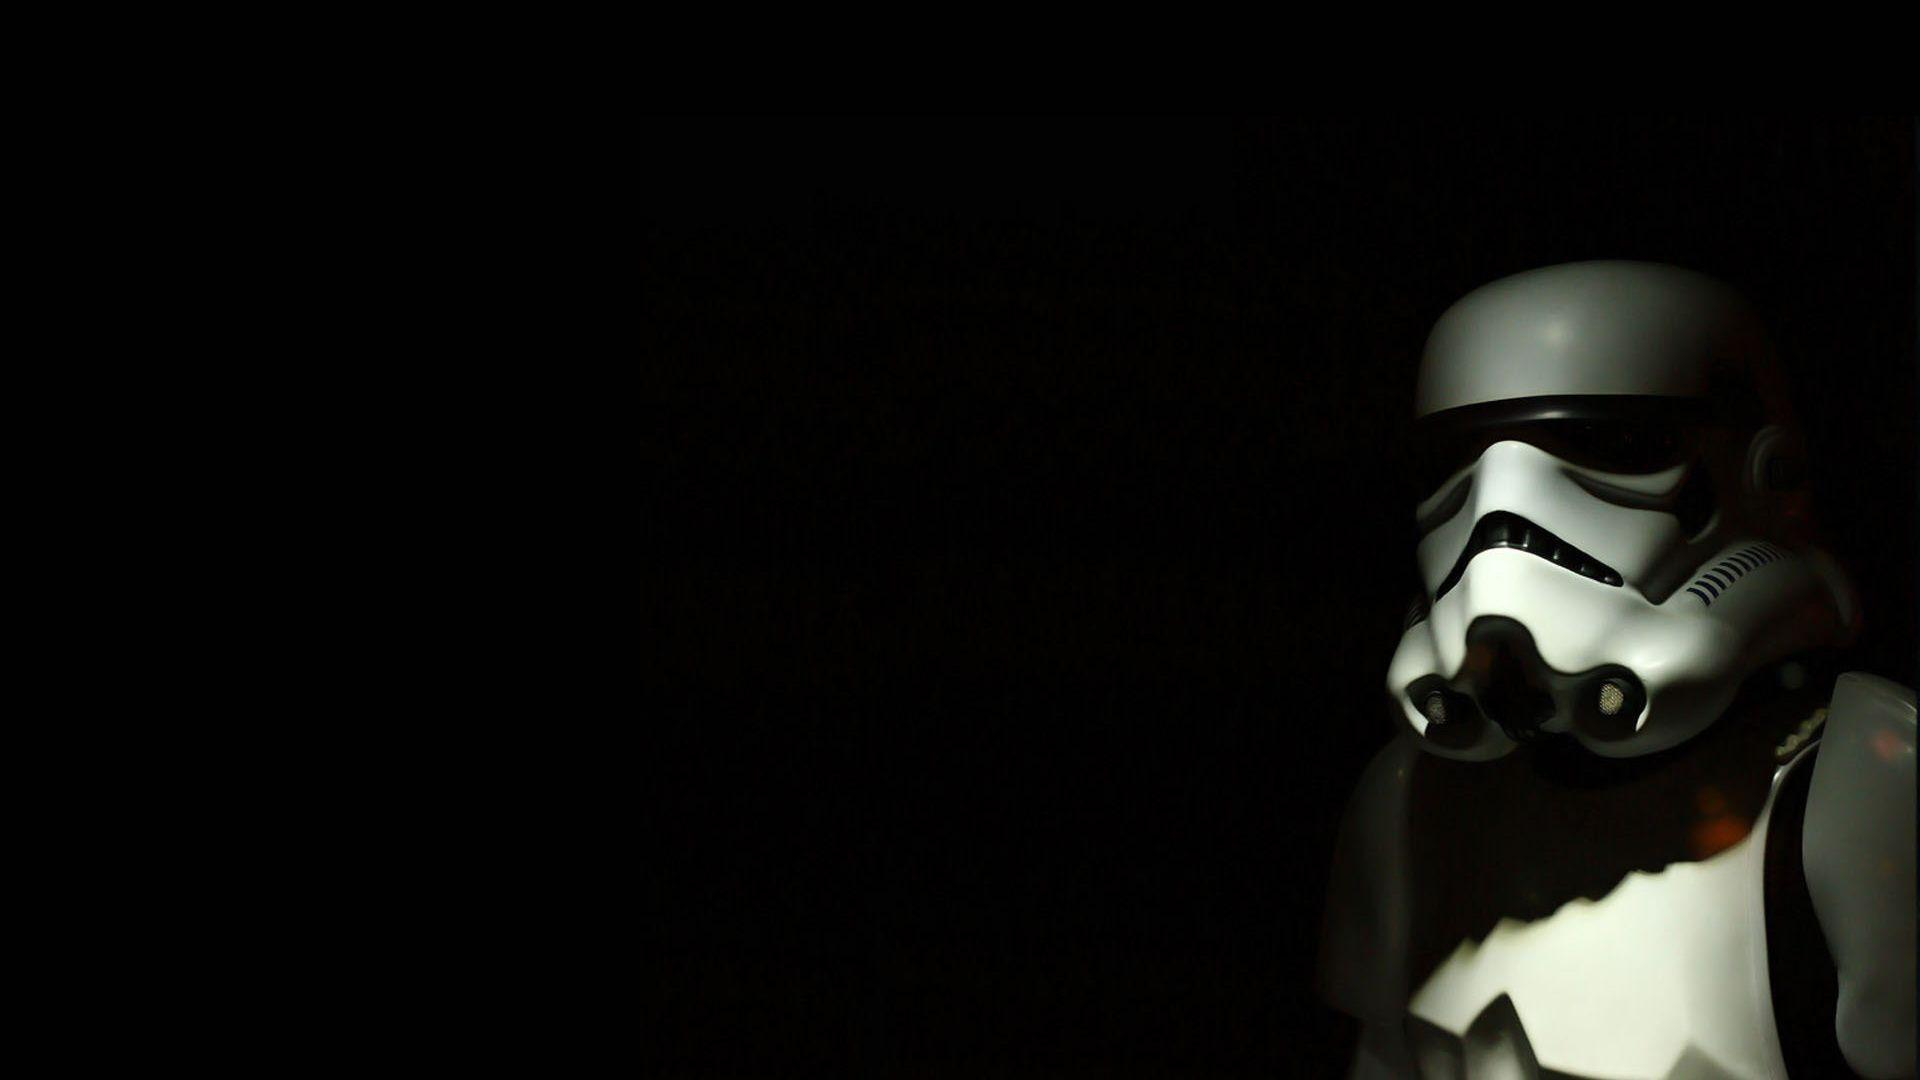 Stormtrooper Star Wars Wallpapers Wallpaper Cave